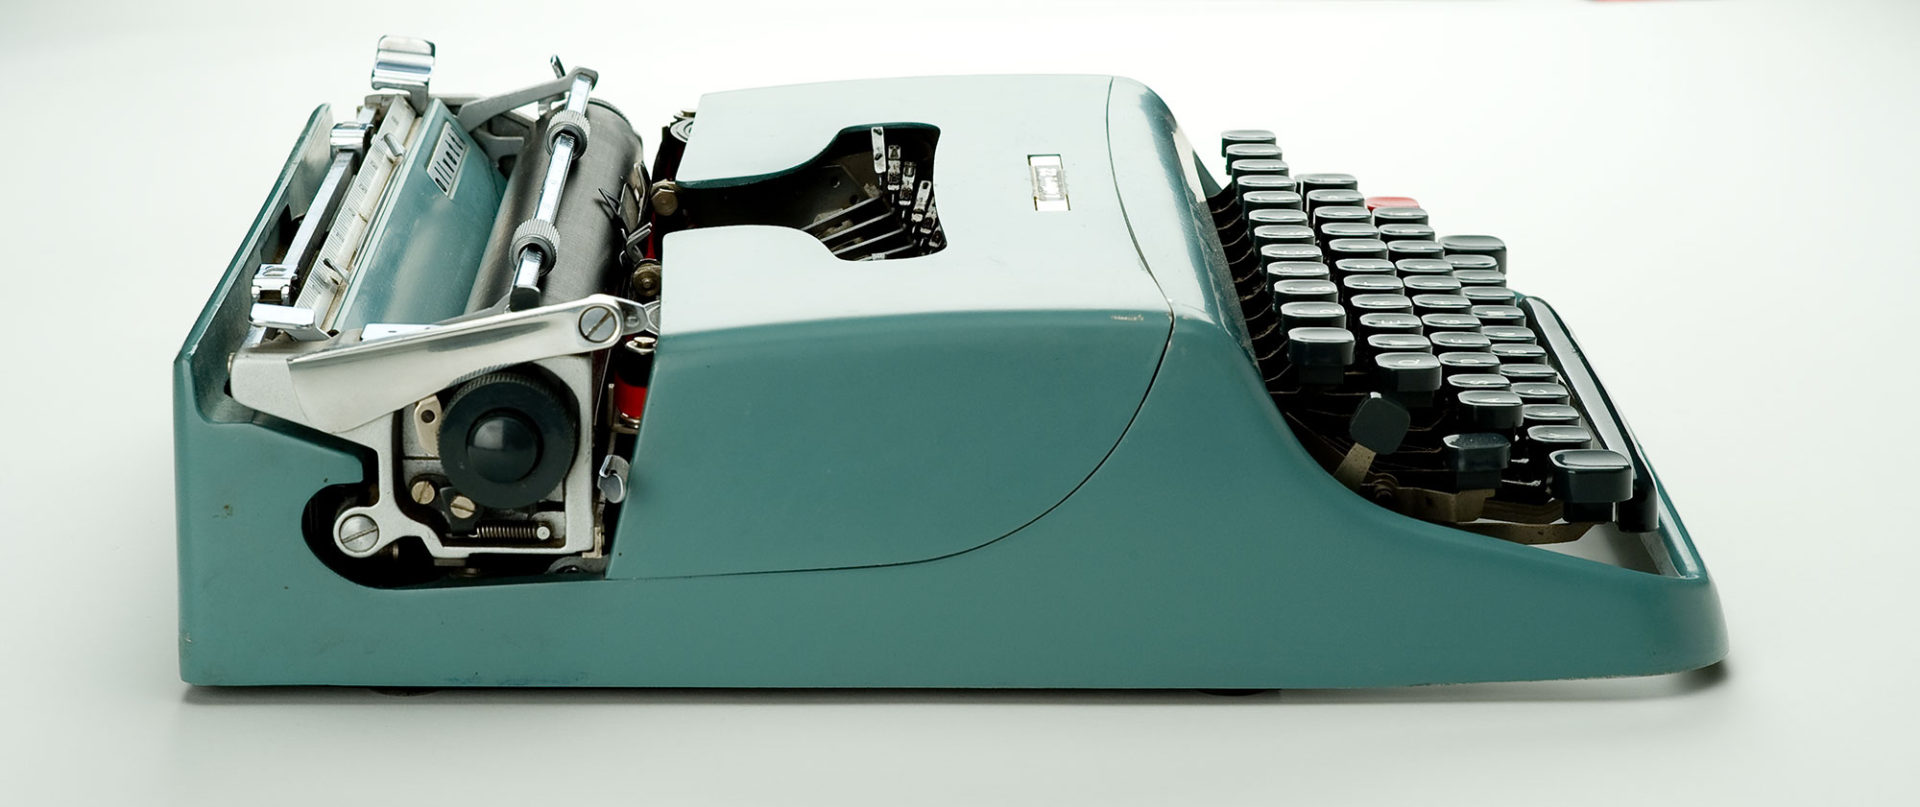 Blue metal typewriter. Its open keyboard has dark grey keys and a red carriage return key. The bar for holding the paper in place and the ruler for measuring margins are in shiny metal.